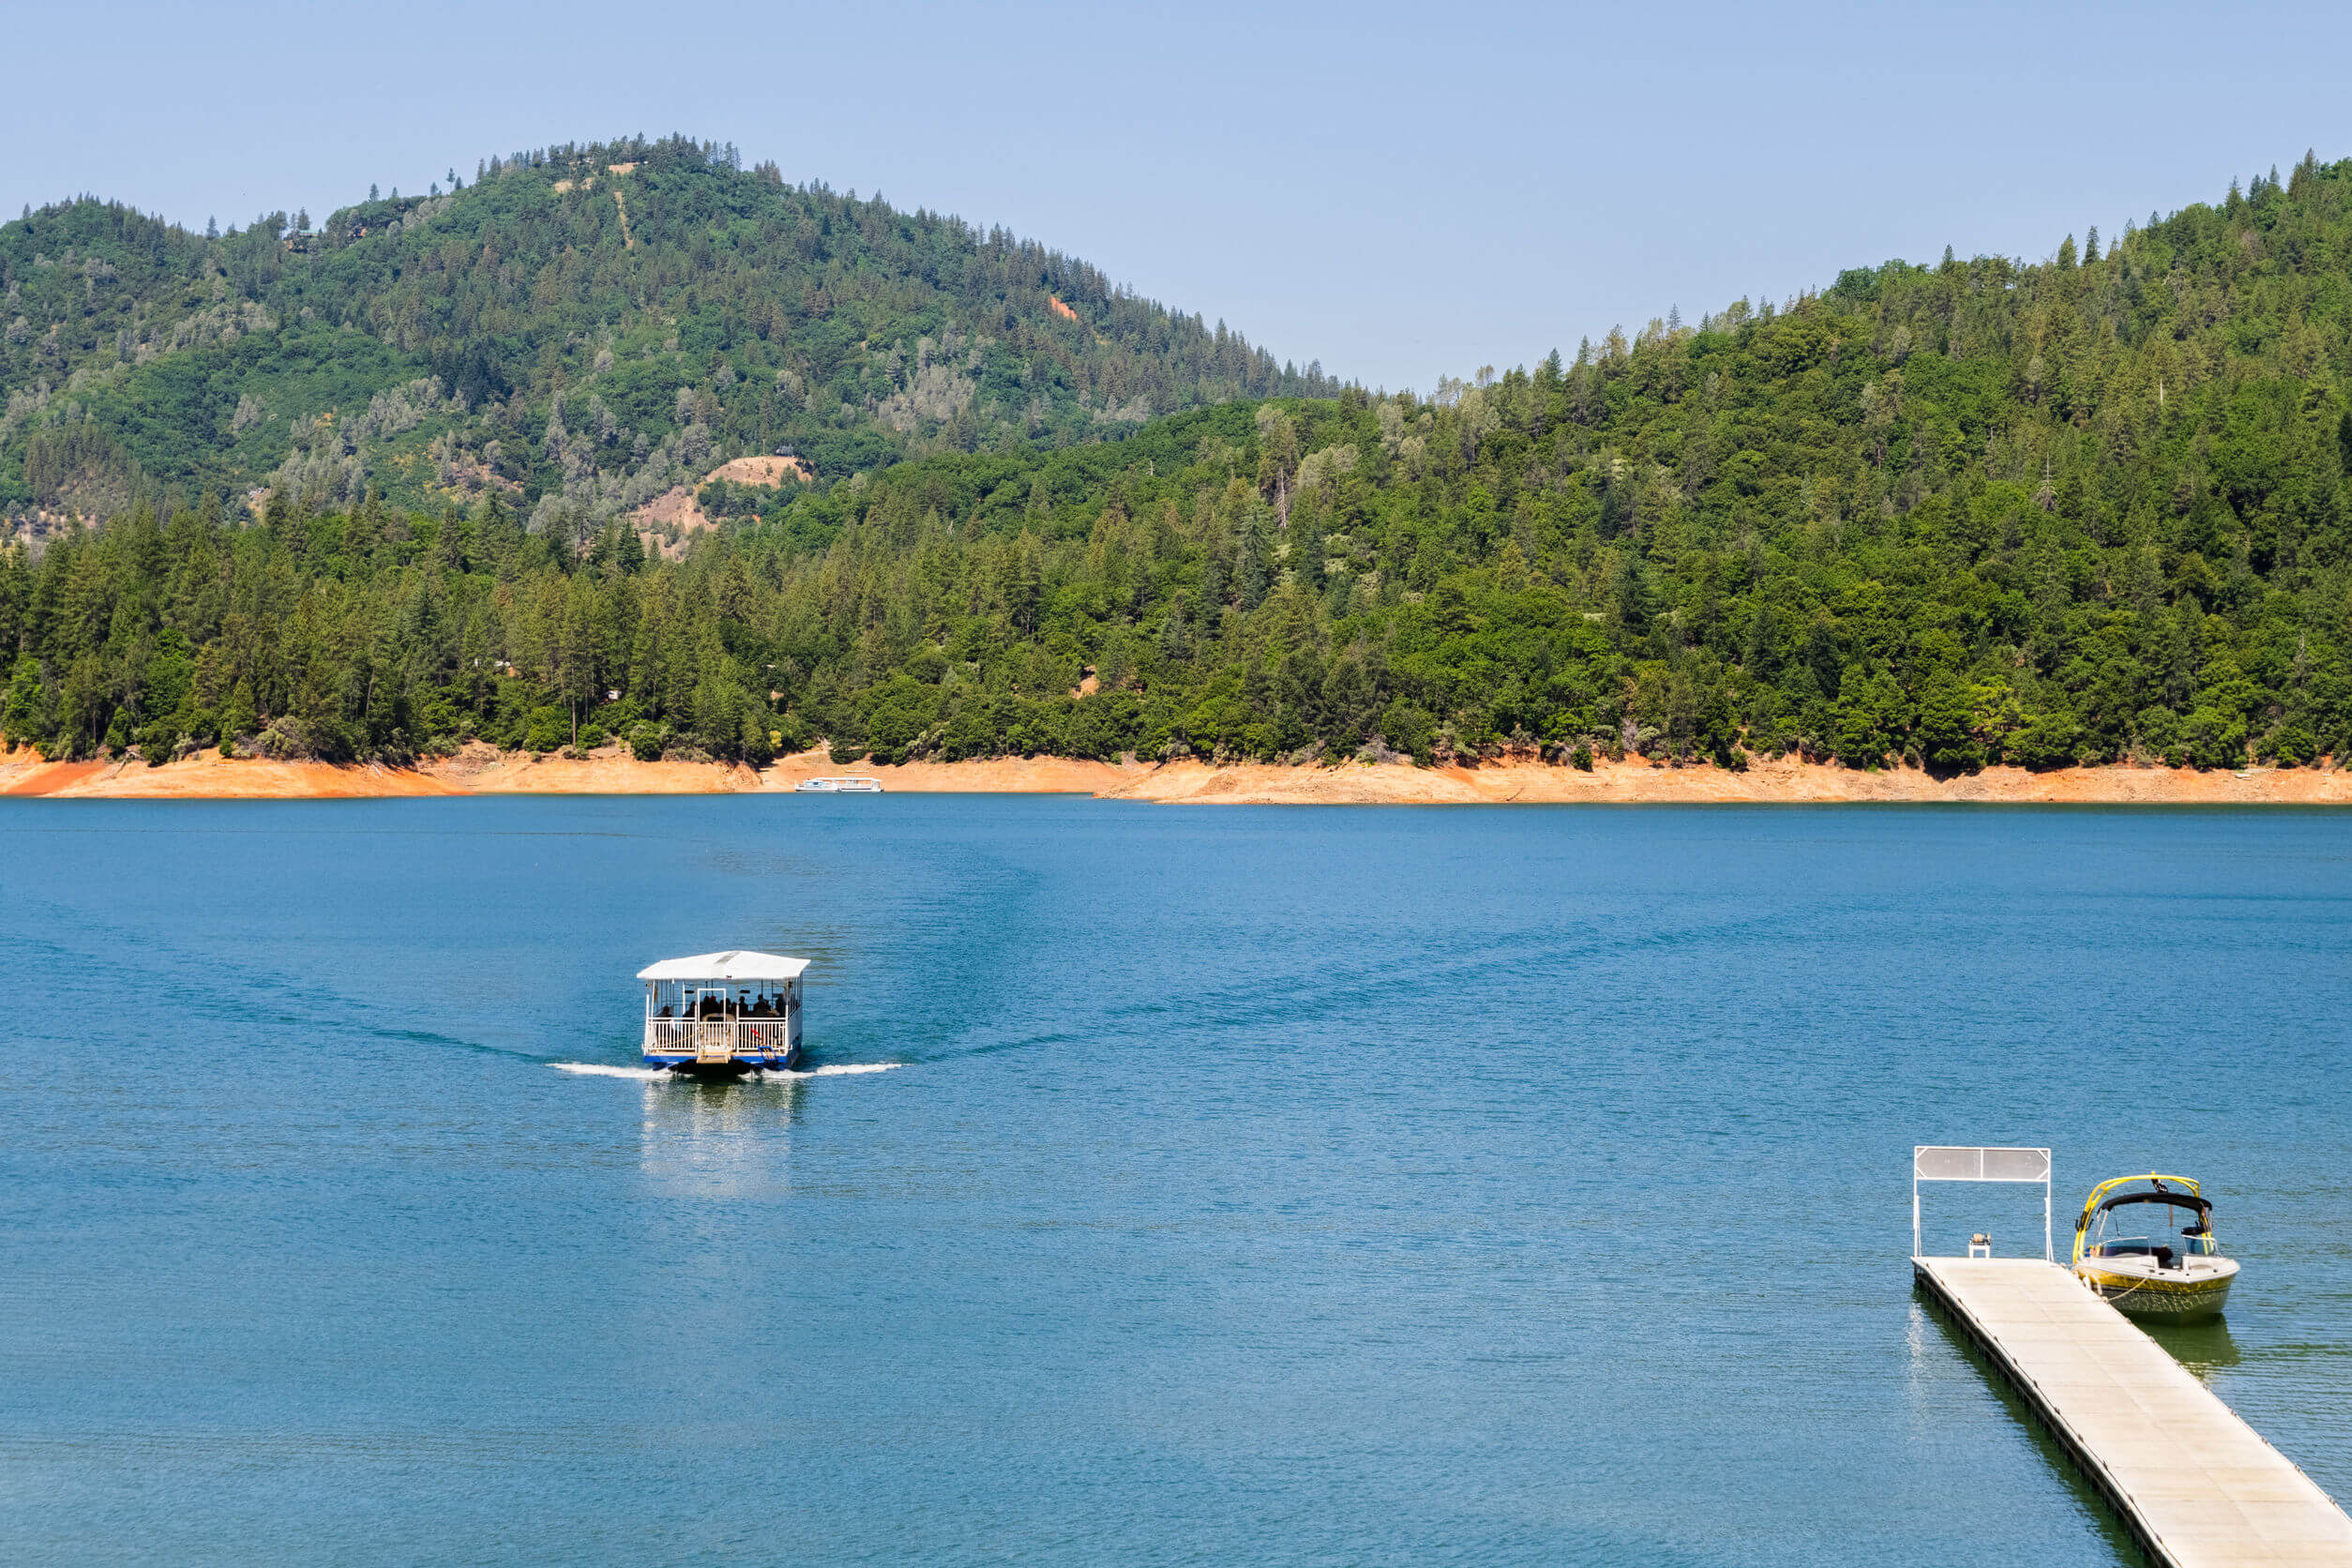 Shasta Lake, McCloud River Arm landscape on a sunny summer day with ship approaching the shoreline, Northern California